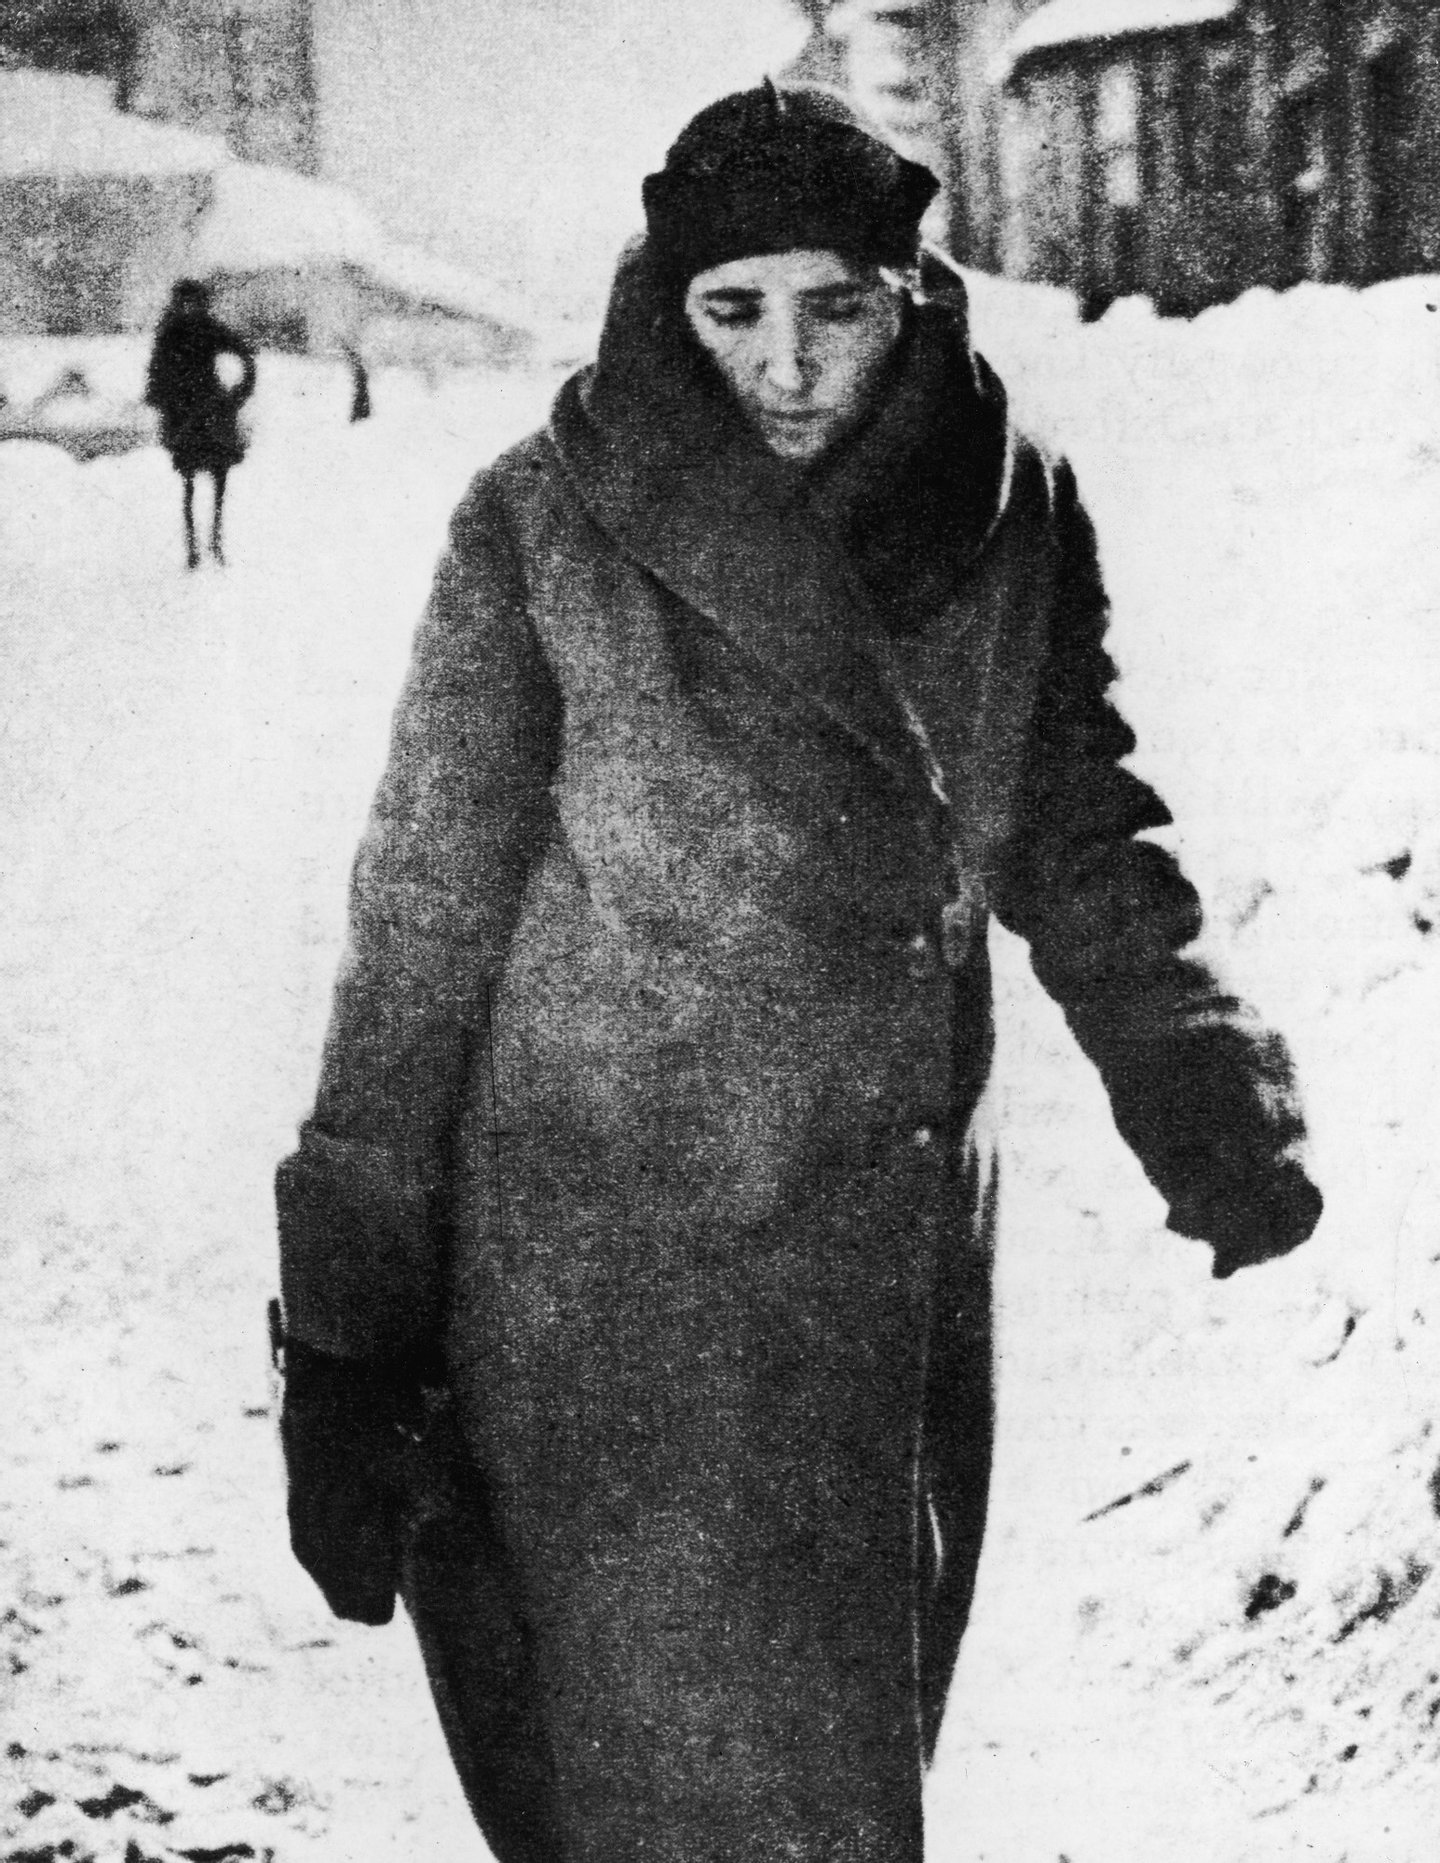 circa 1925: Nadezhda Alliluyeva-Stalin (1901 - 1932), the second wife of Joseph Stalin and mother of his children Vassily and Svetlana. They married in 1919 and she killed herself on November 8th, 1932. (Photo by Hulton Archive/Getty Images)